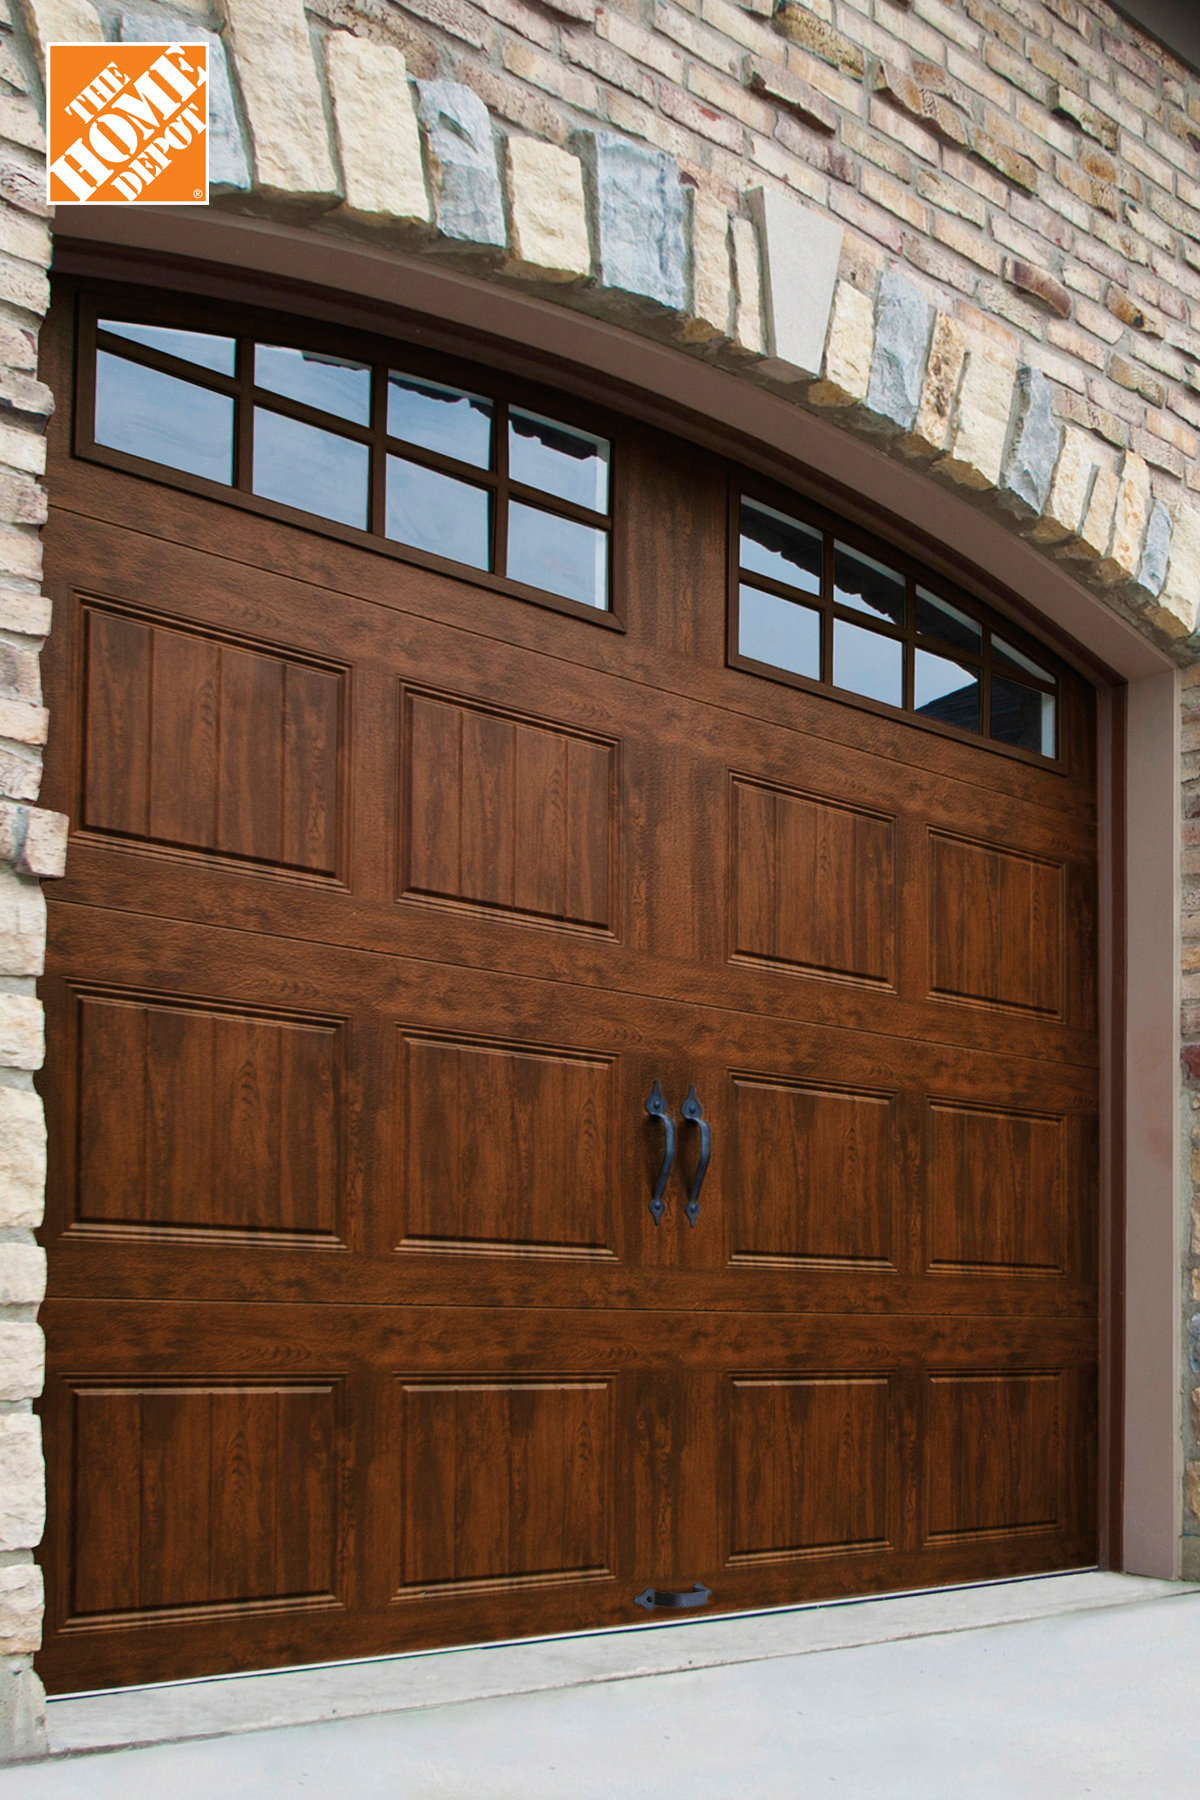 New garage doors are an easy way to completely transform